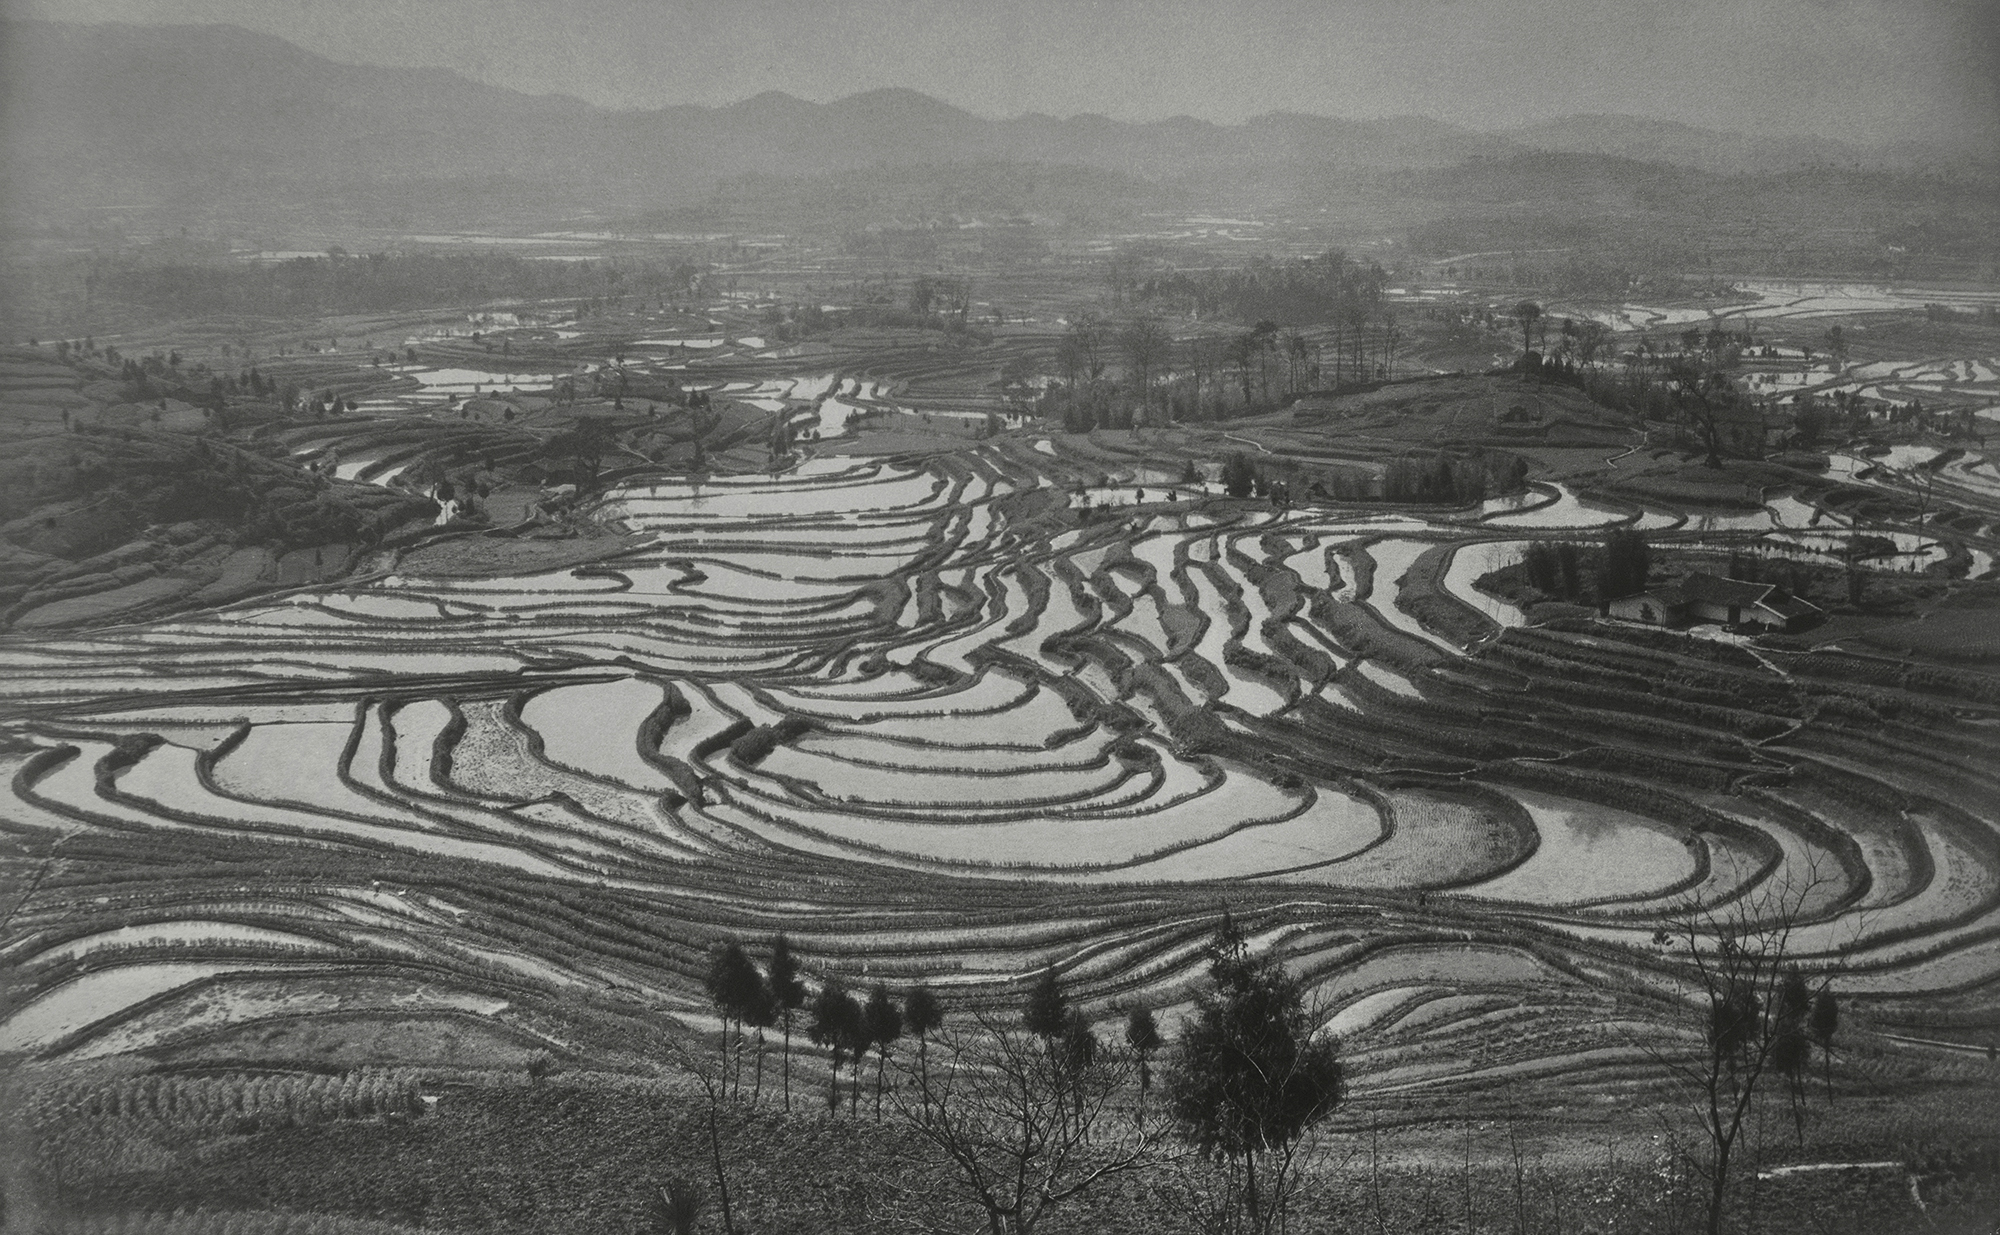 Xue Zijiang, Before Spring Ploughing, Sichuan Province, 1957, printed on fine heavy paper, mounted on cardboard, 50.3×83.5cm, courtesy of Huang Jianpeng Gallery 黄建鹏画廊